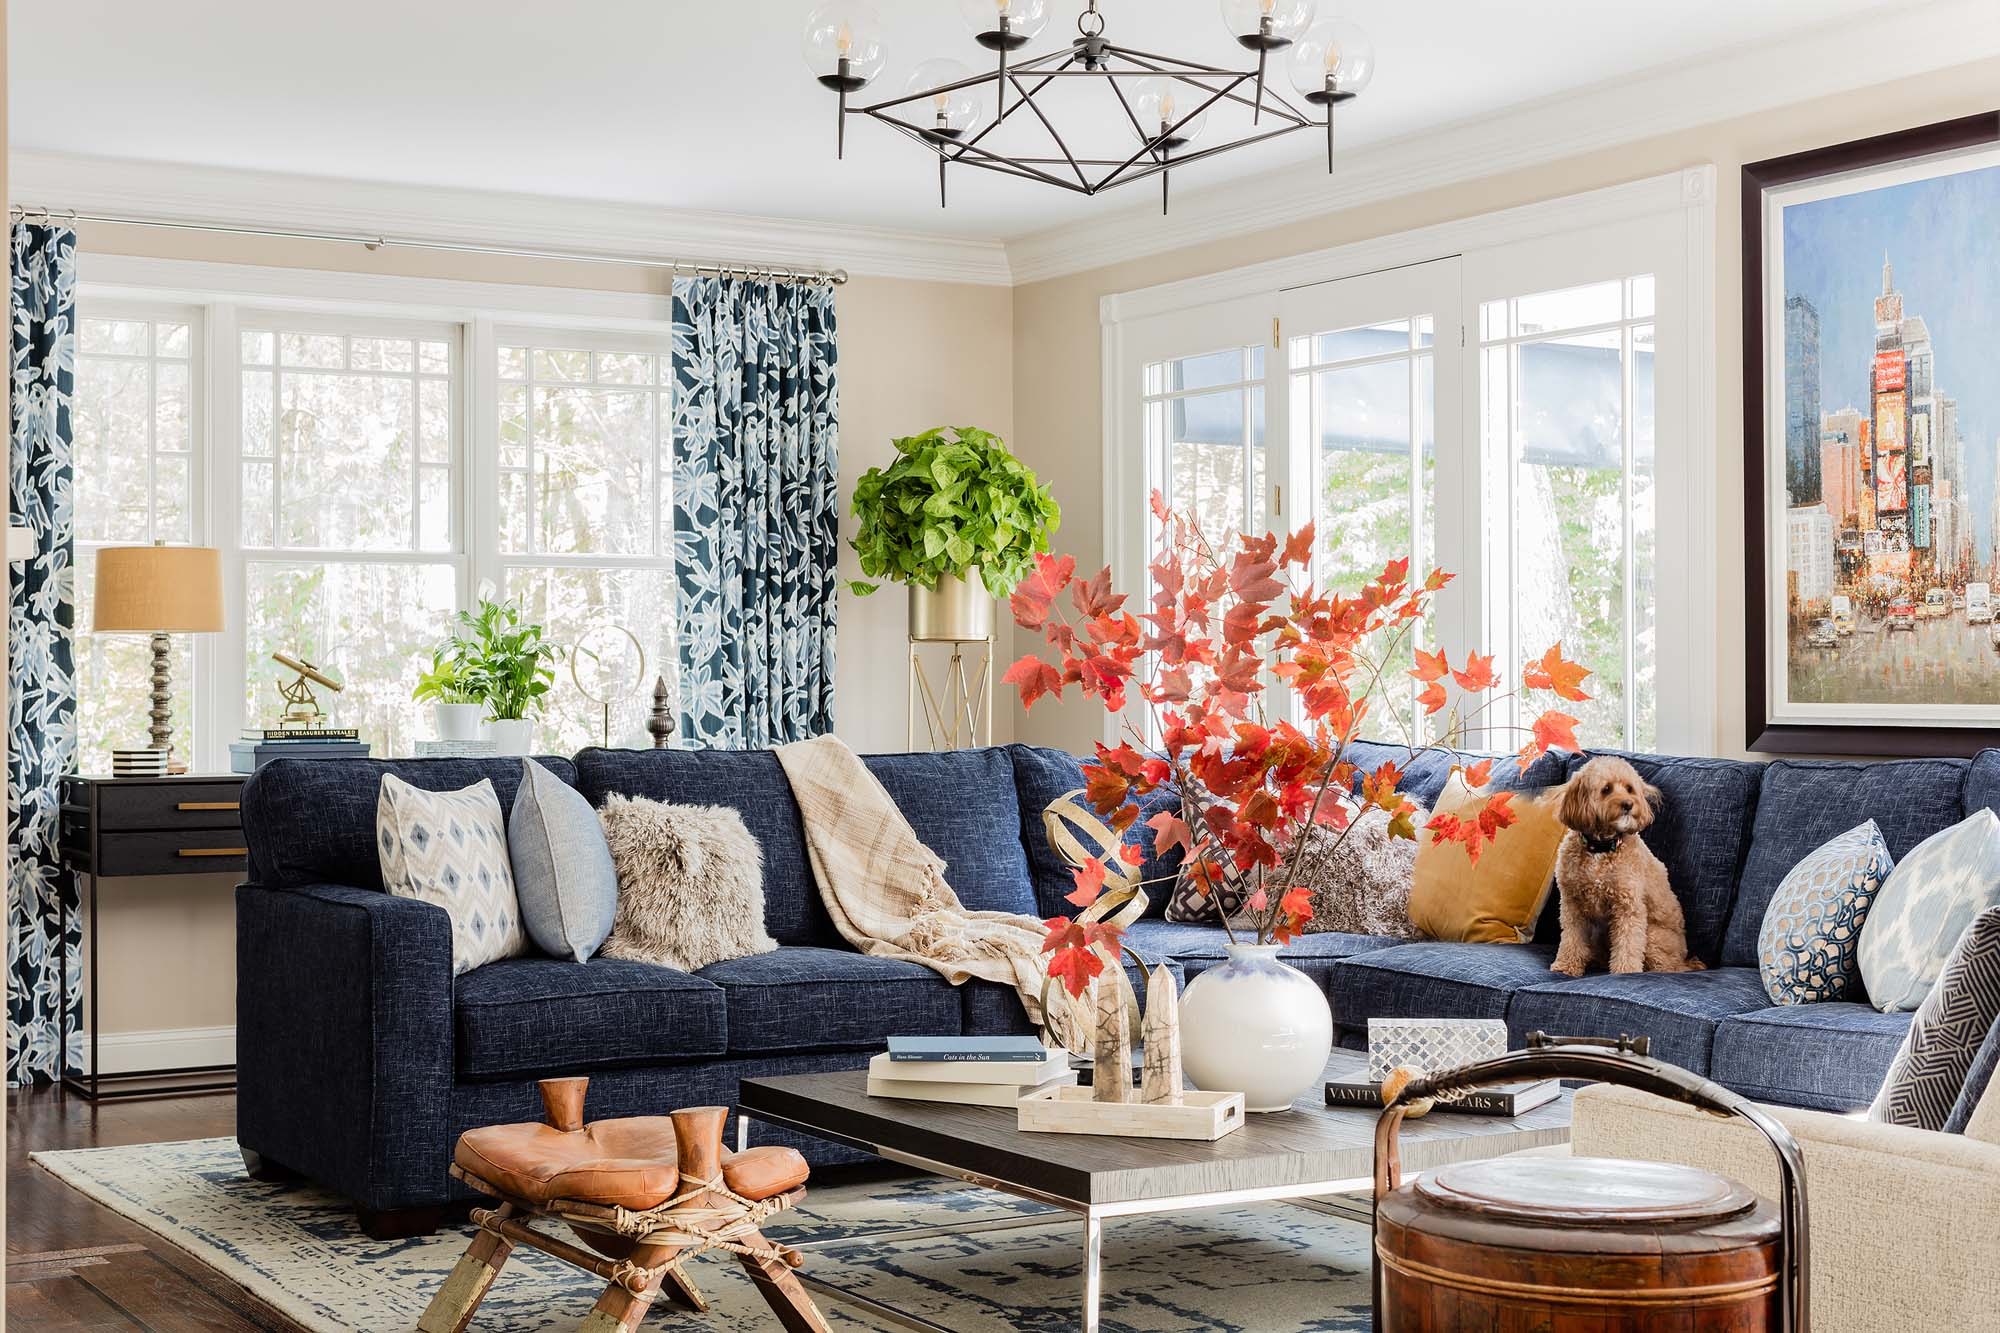 Living room with large sofa, wooden center table, and maple leaf branch decorations, rowan, worlds away, chandelier, dog, bassett, sectional, blue velvet sectional, rh, restoration hardware, nicholas oak coffee table, camel saddle, rice pot, duralee